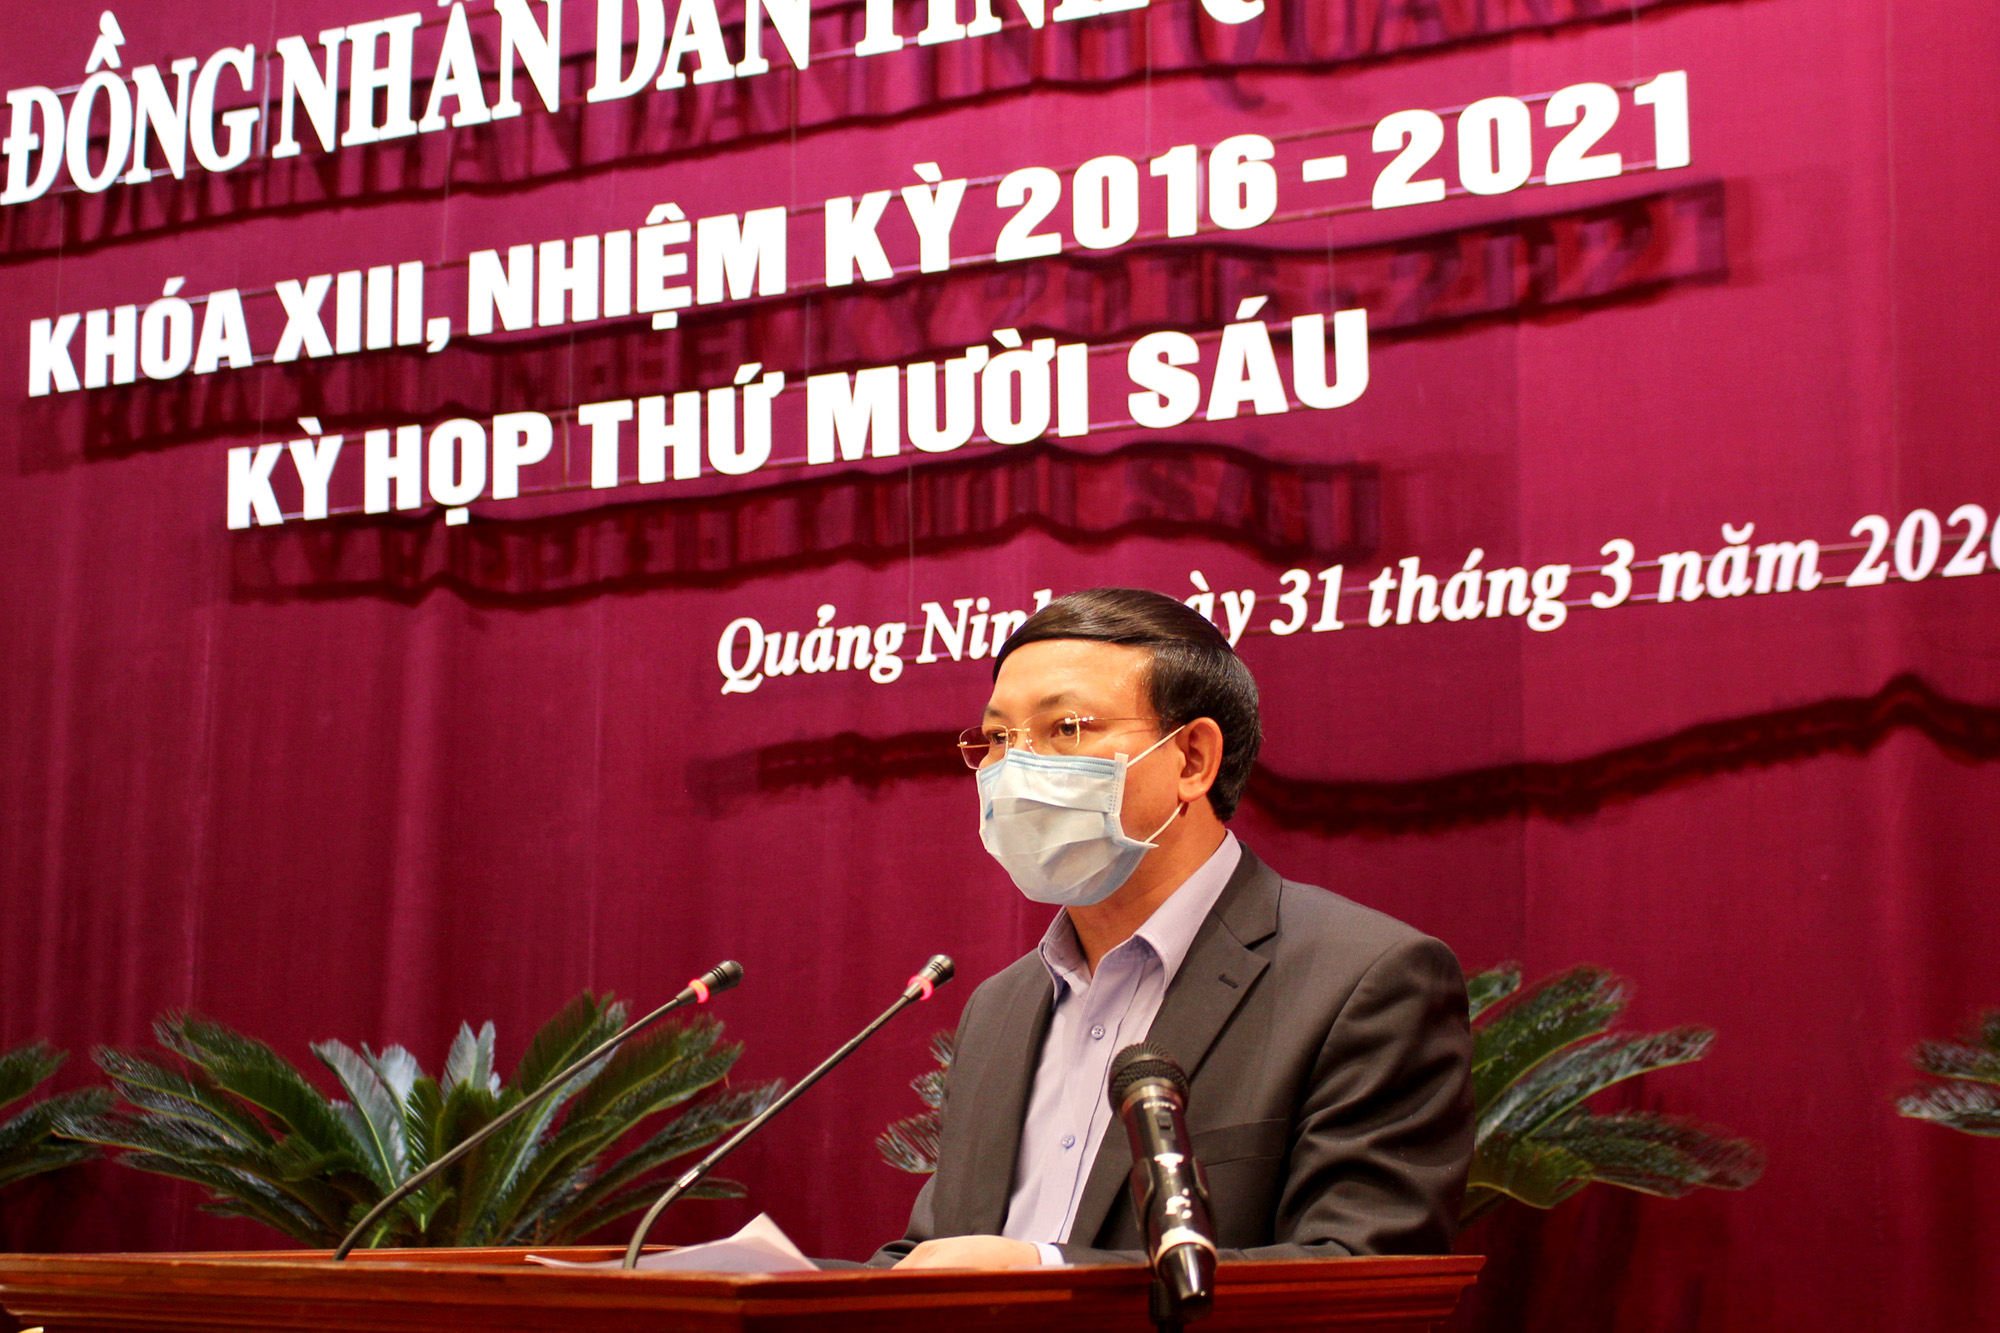 Quang Ninh saves expenditure and spends maximum resources for fighting COVID-19